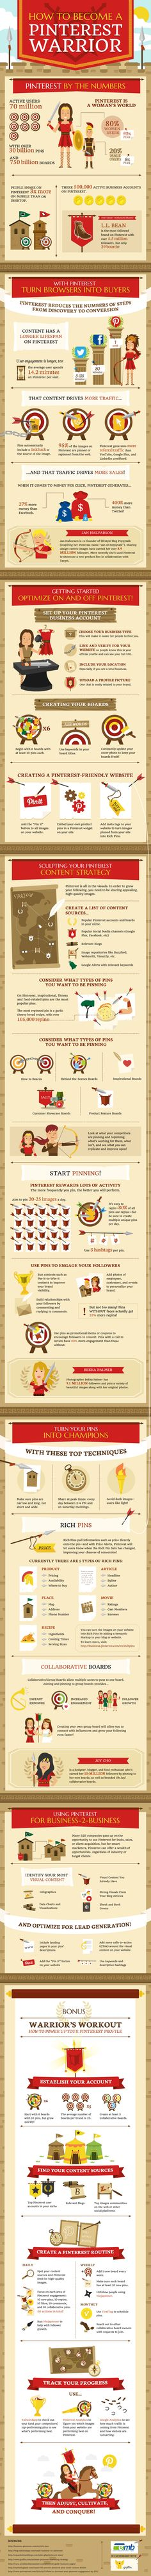 How to Become a #Pinterest Warrior [Infographic]  #RePin by AT Social Media Marketing - Pinterest Marketing Specialists ATSocialMedia.co.uk